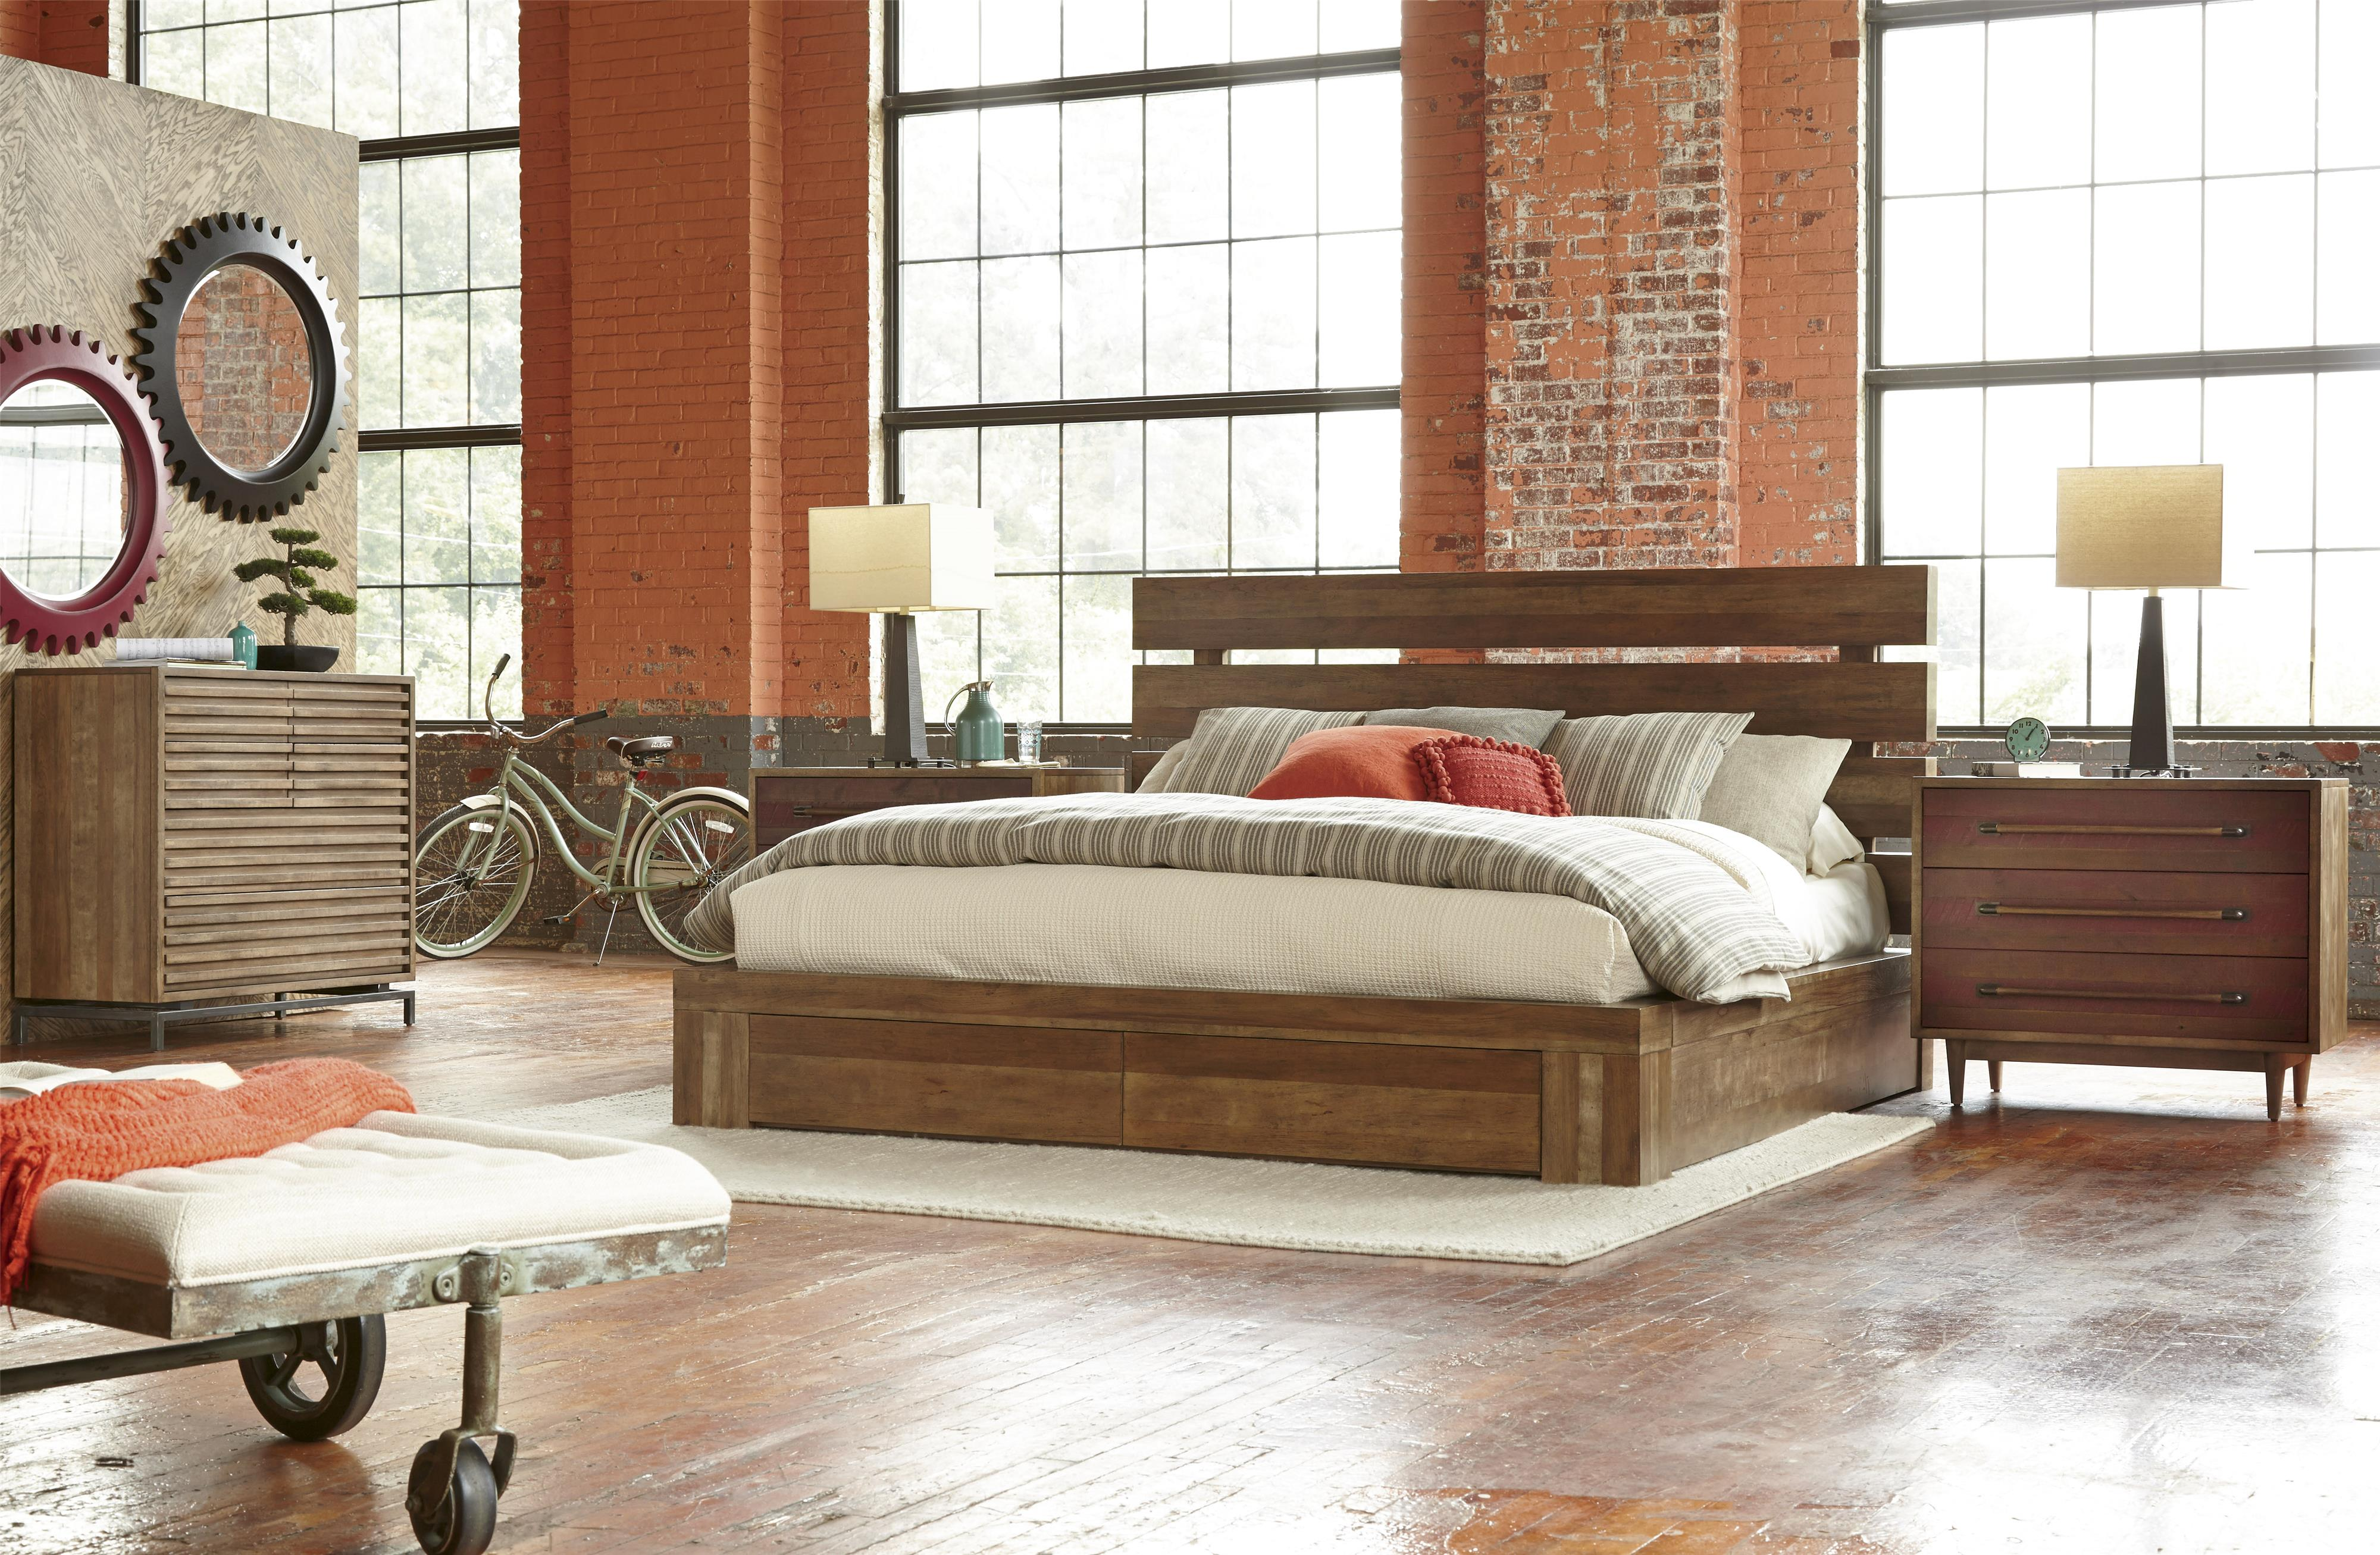 Belfort Signature Urban Treasures King Bedroom Group - Item Number: 223000-2302 K Bedroom Group 2